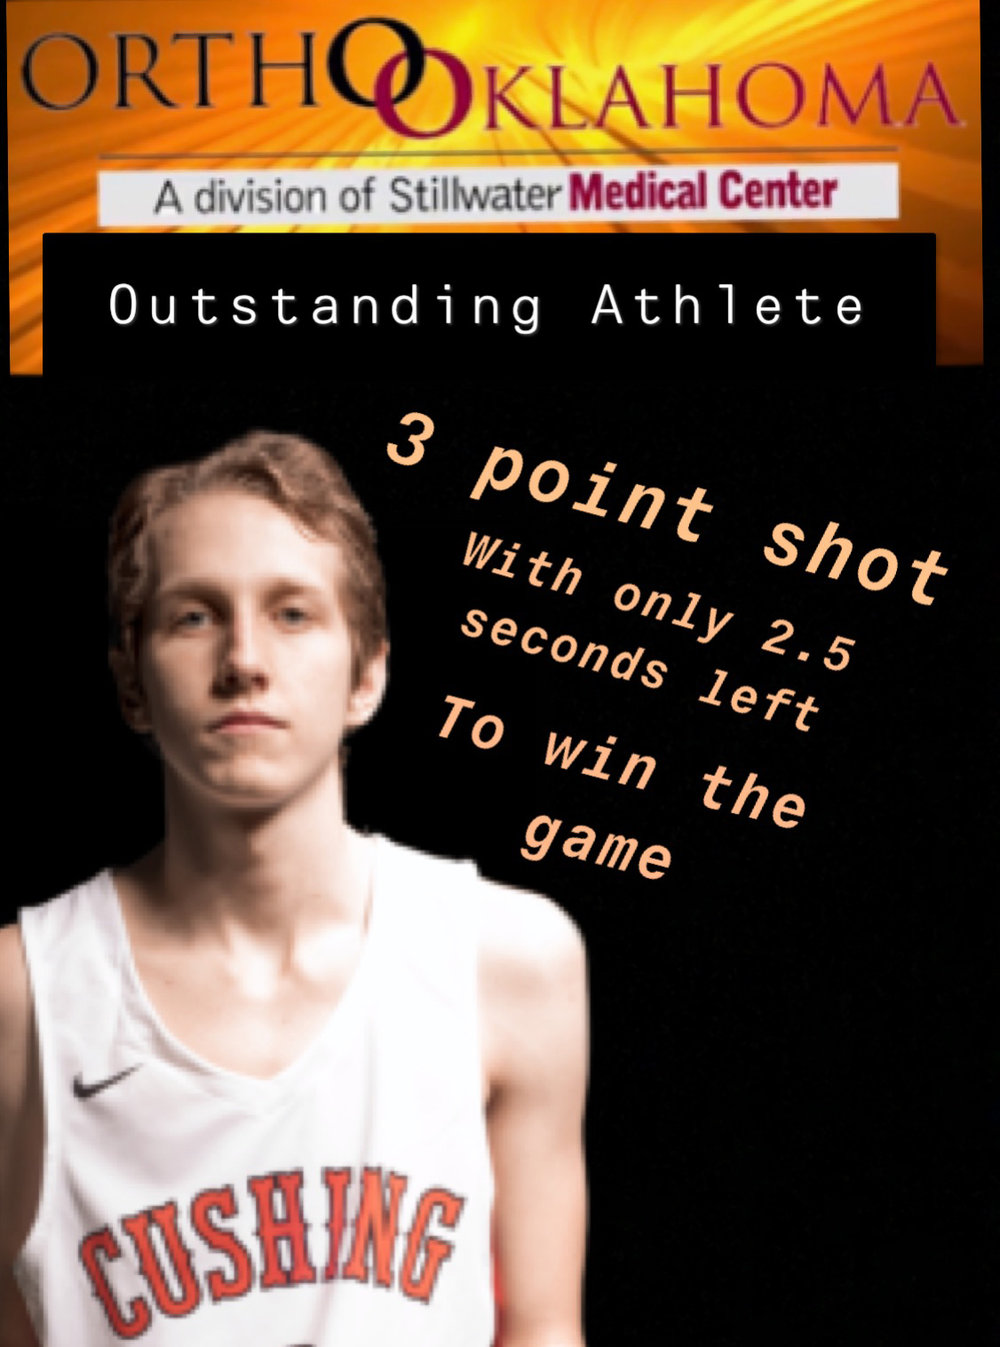 This week's Ortho Oklahoma Outstanding Athlete